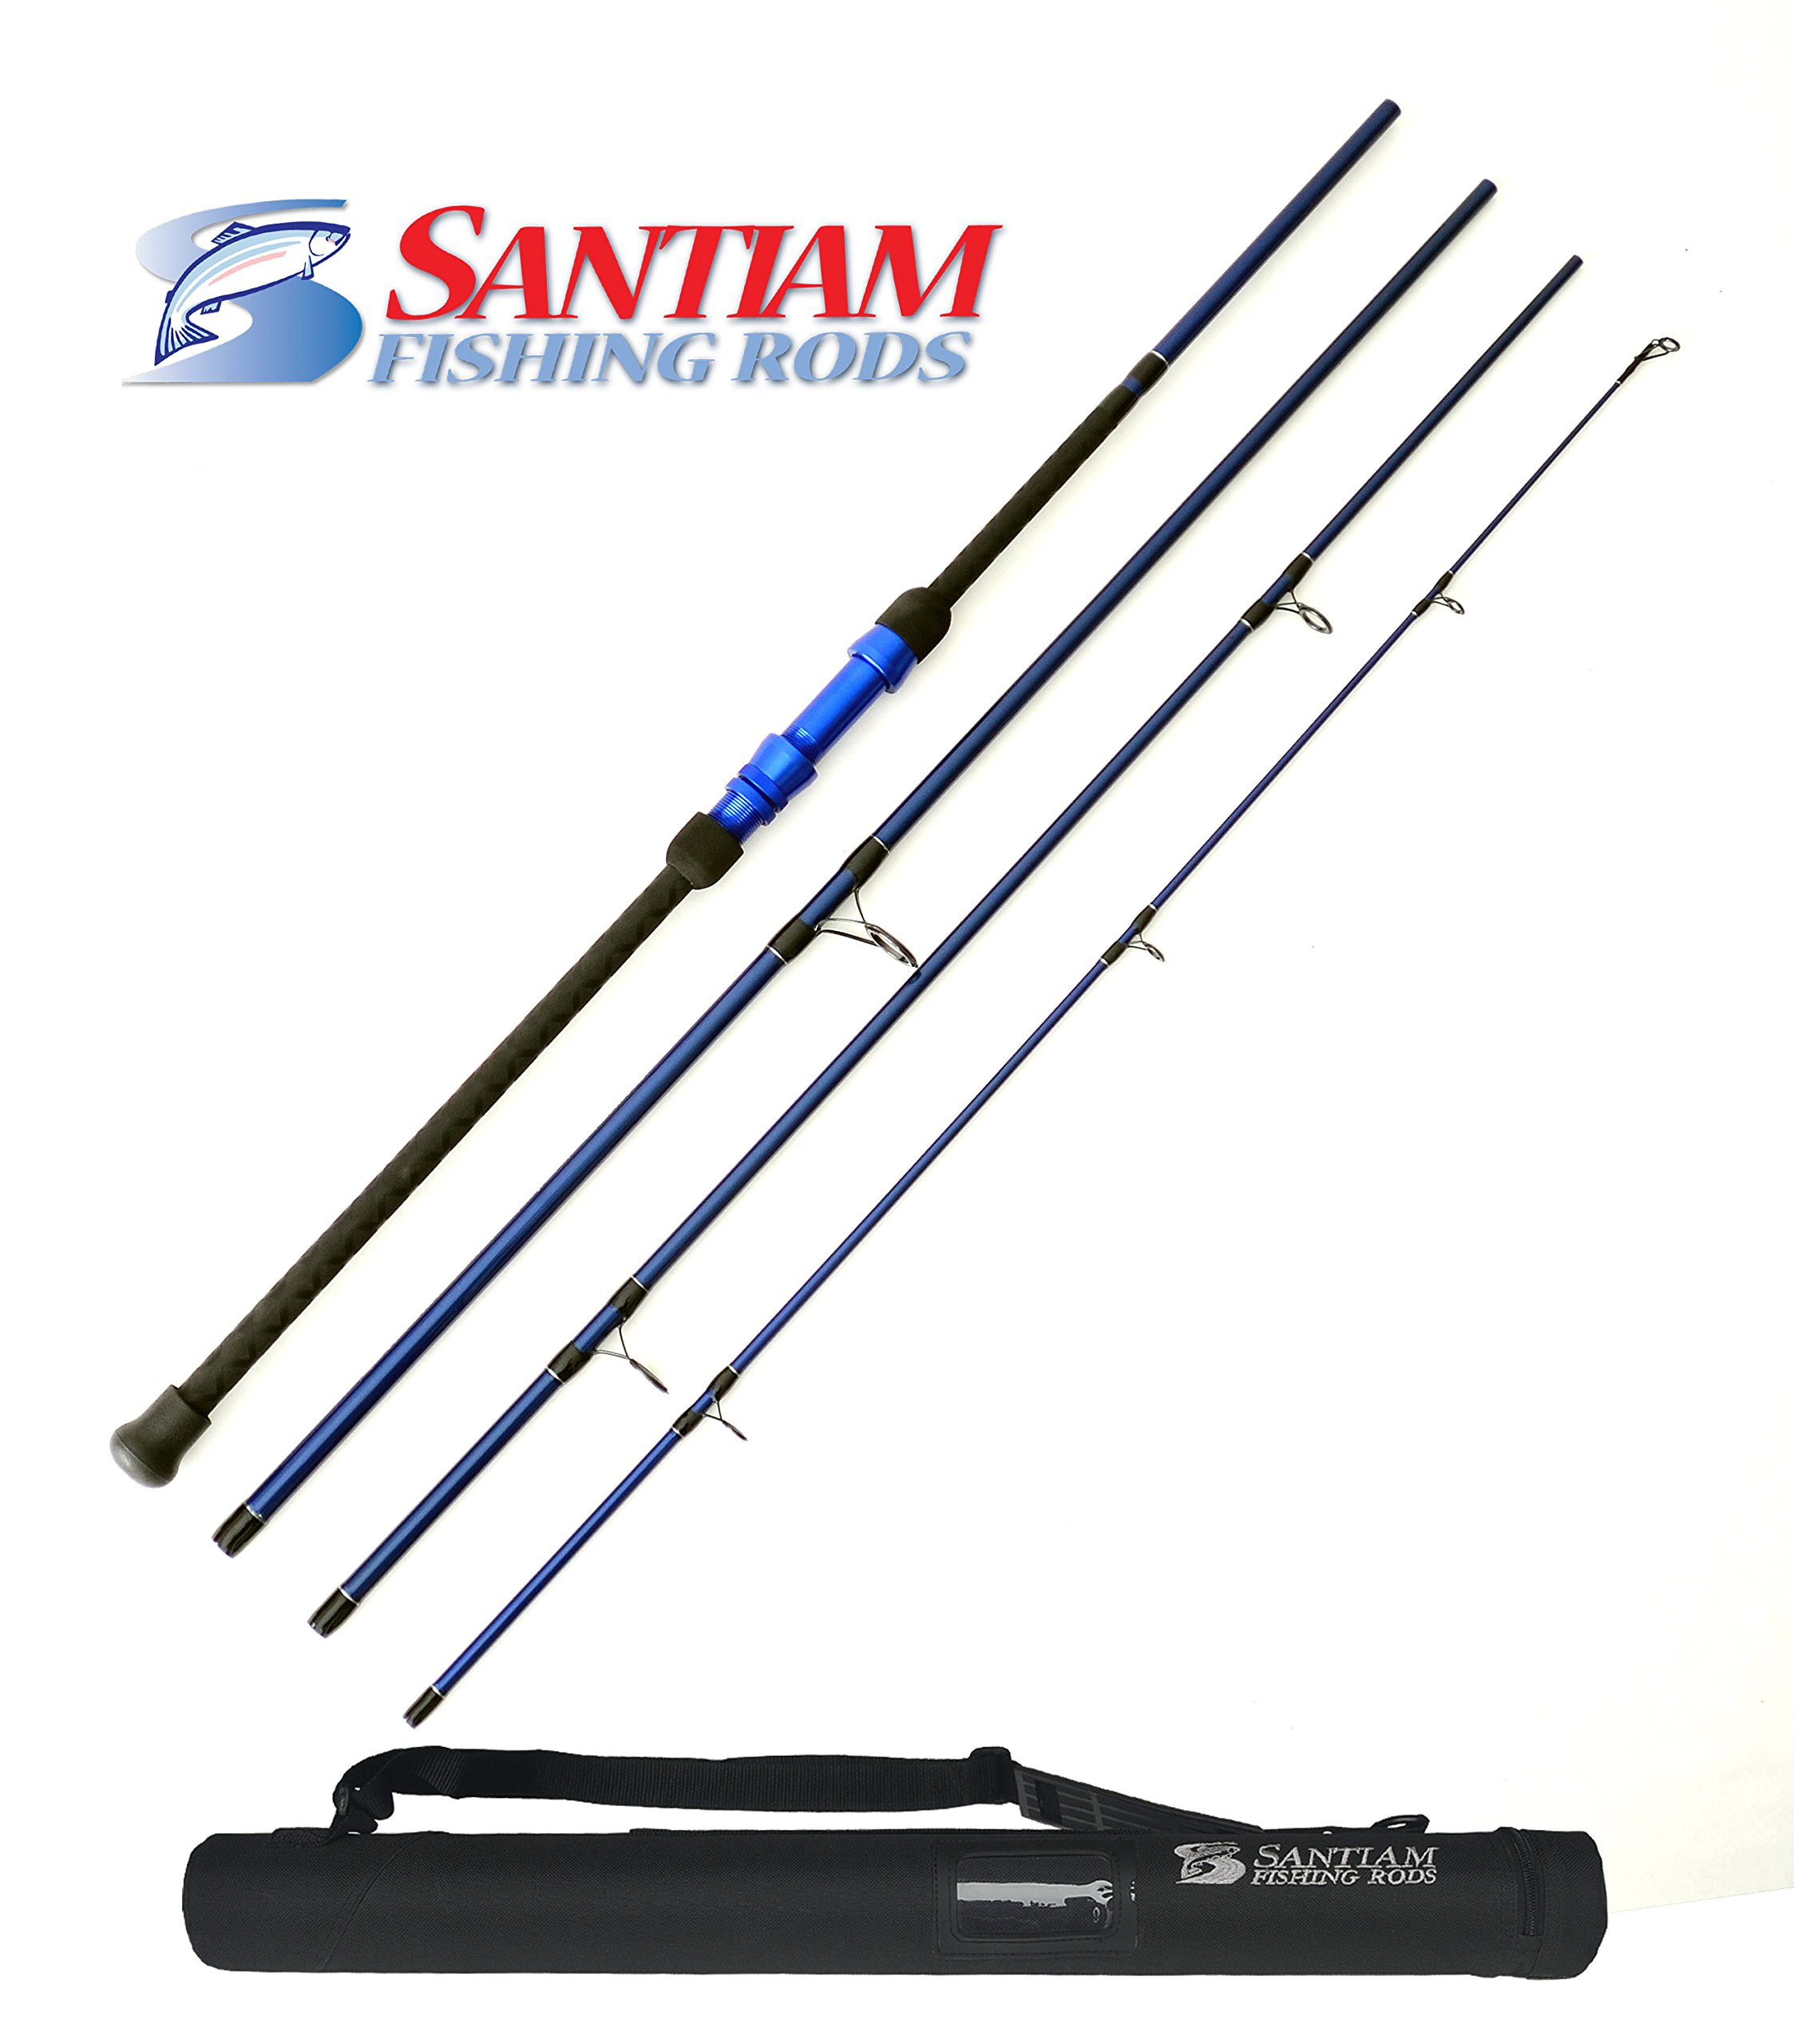 Santiam Fishing Rods Travel Rod 4 Piece 12' 17-40lb Surf Rod by Santiam Fishing Rods